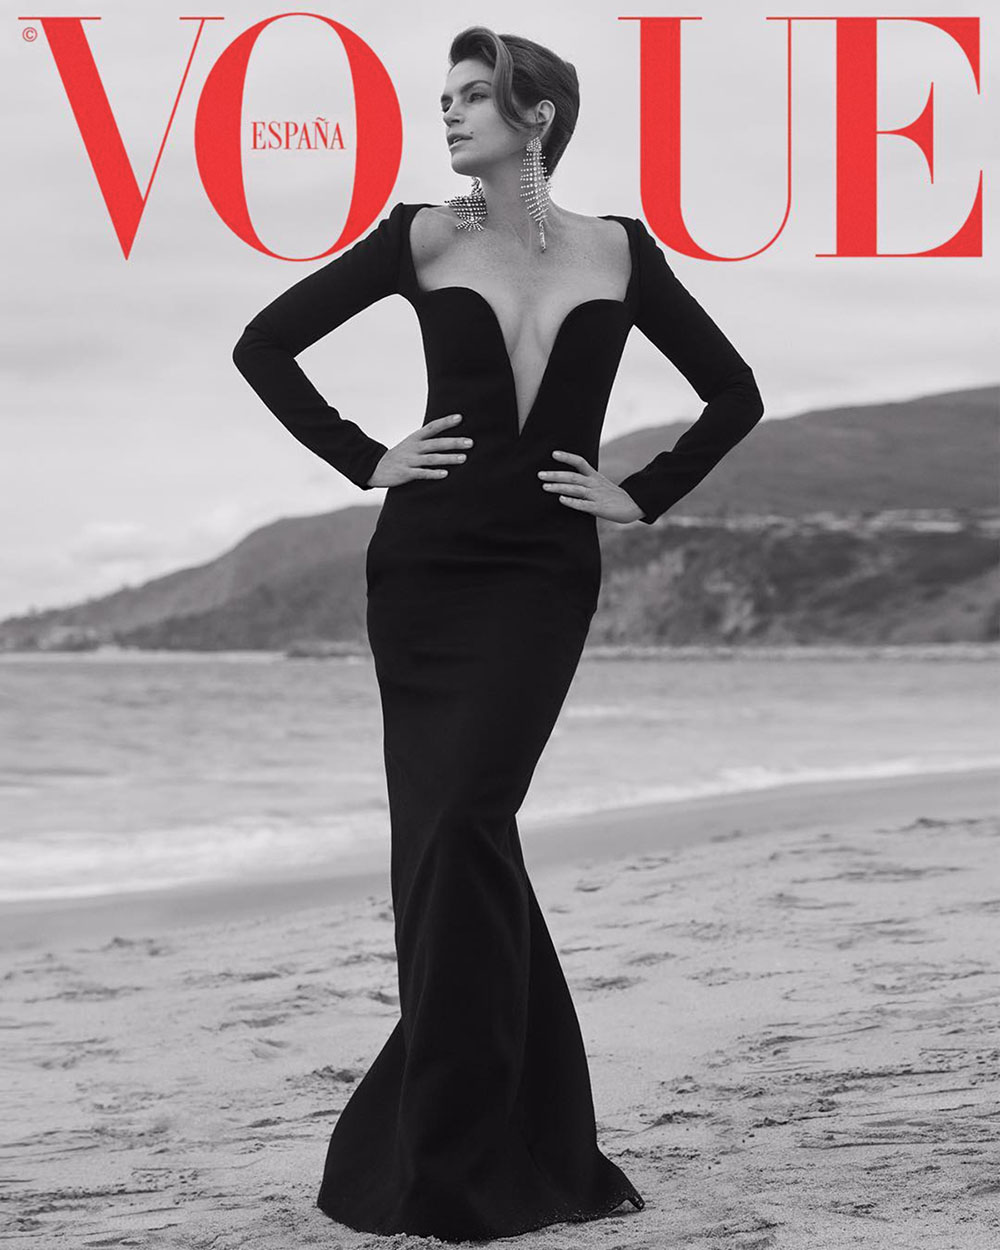 Cindy Crawford covers Vogue Spain October 2018 by Sebastian Faena